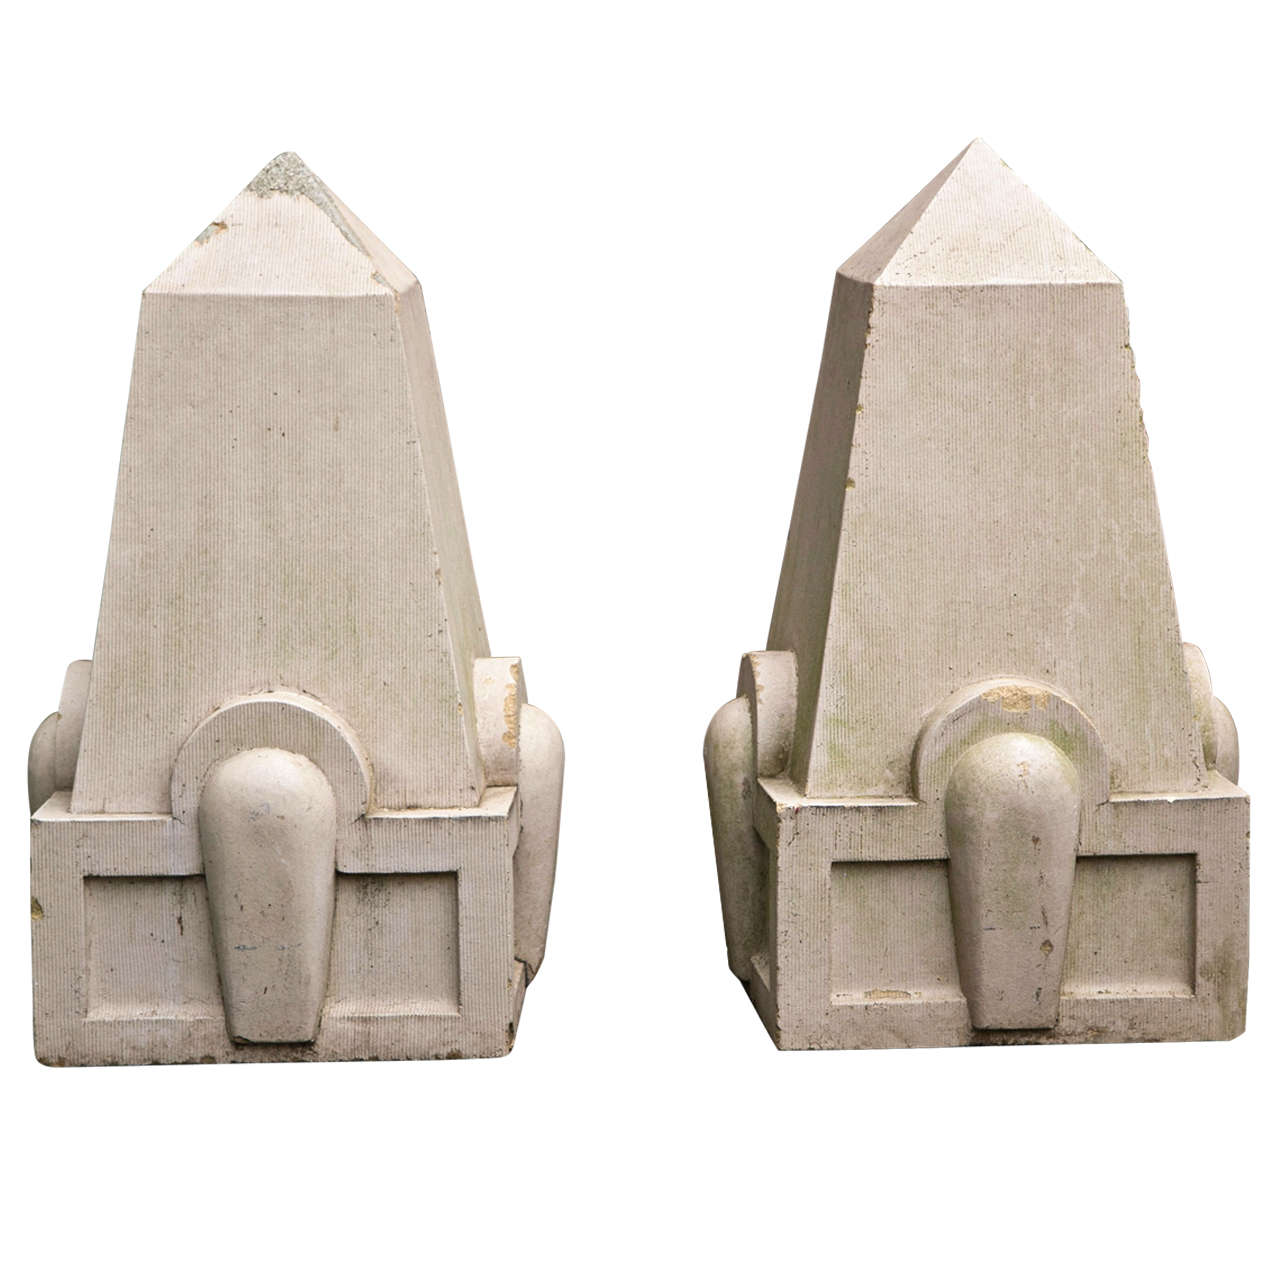 Pair of Art Deco Glazed Terra Cotta Finials For Sale